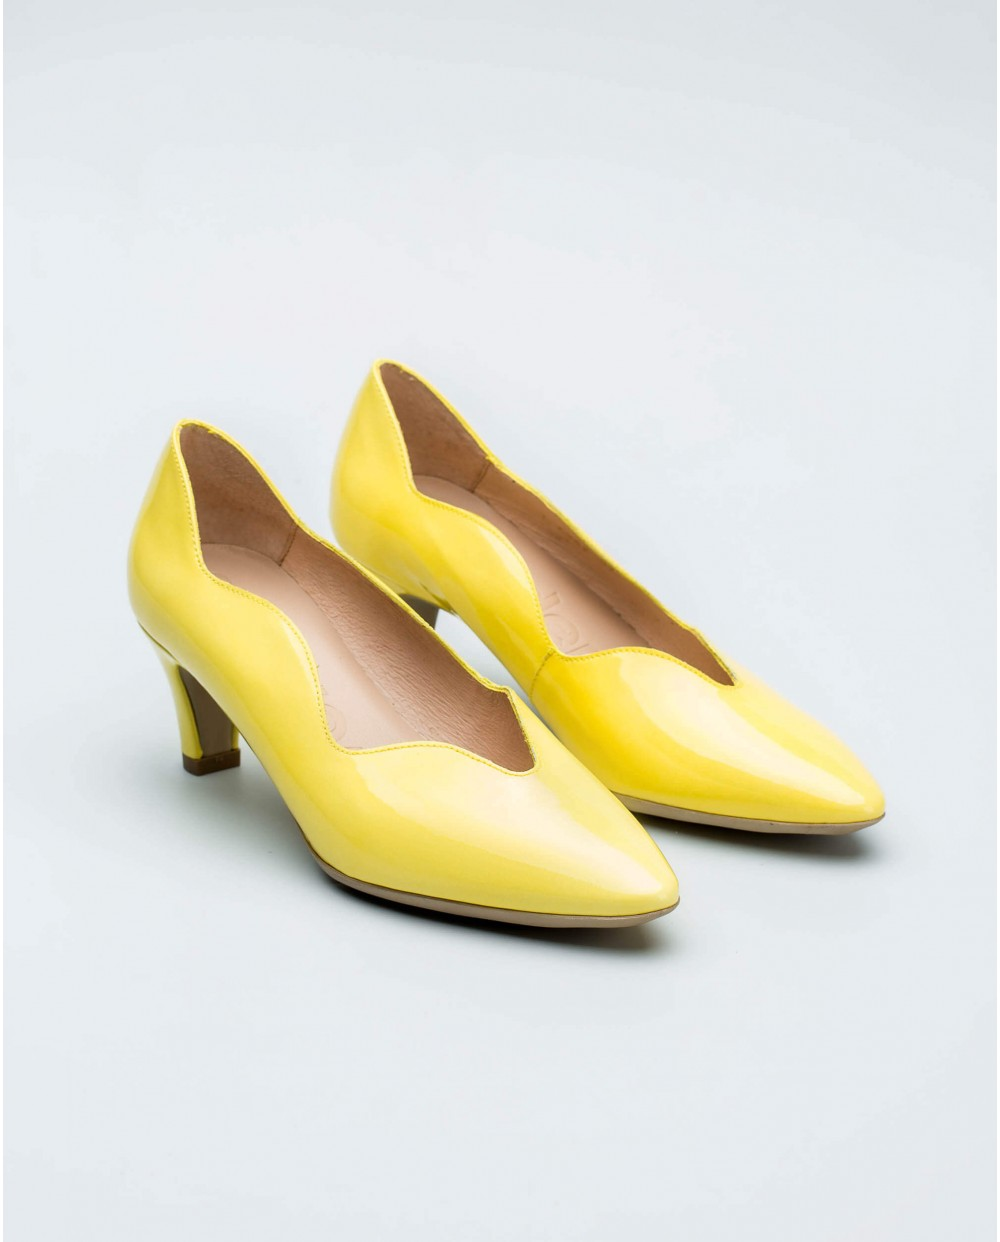 Wonders-Women-Patent leather shoe with wave detail